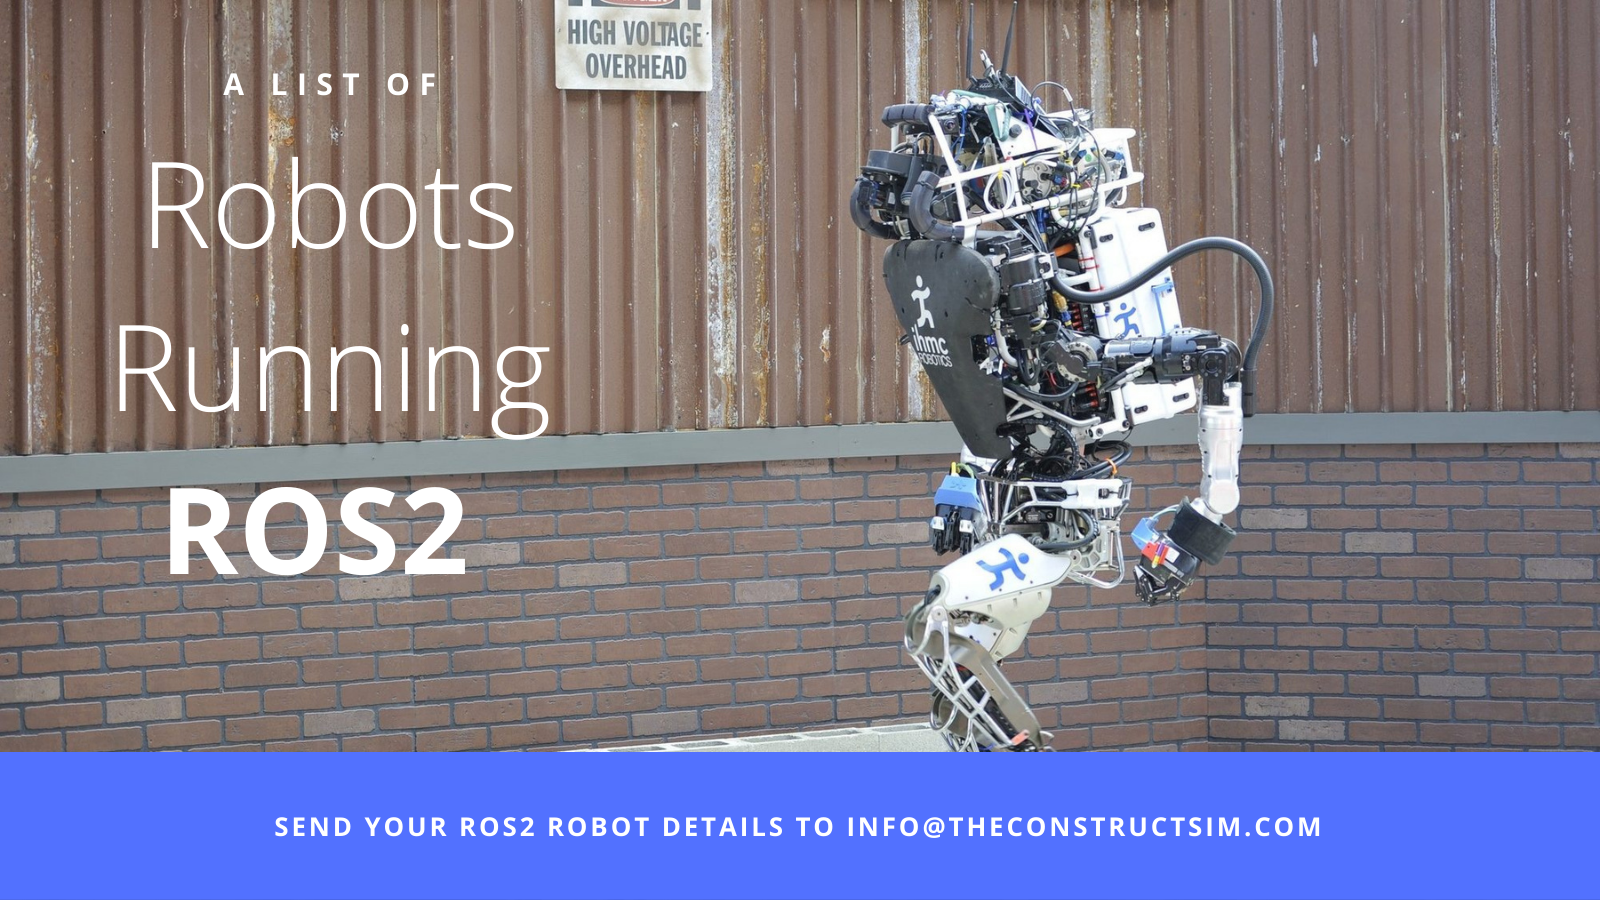 A list of robots running on ROS2